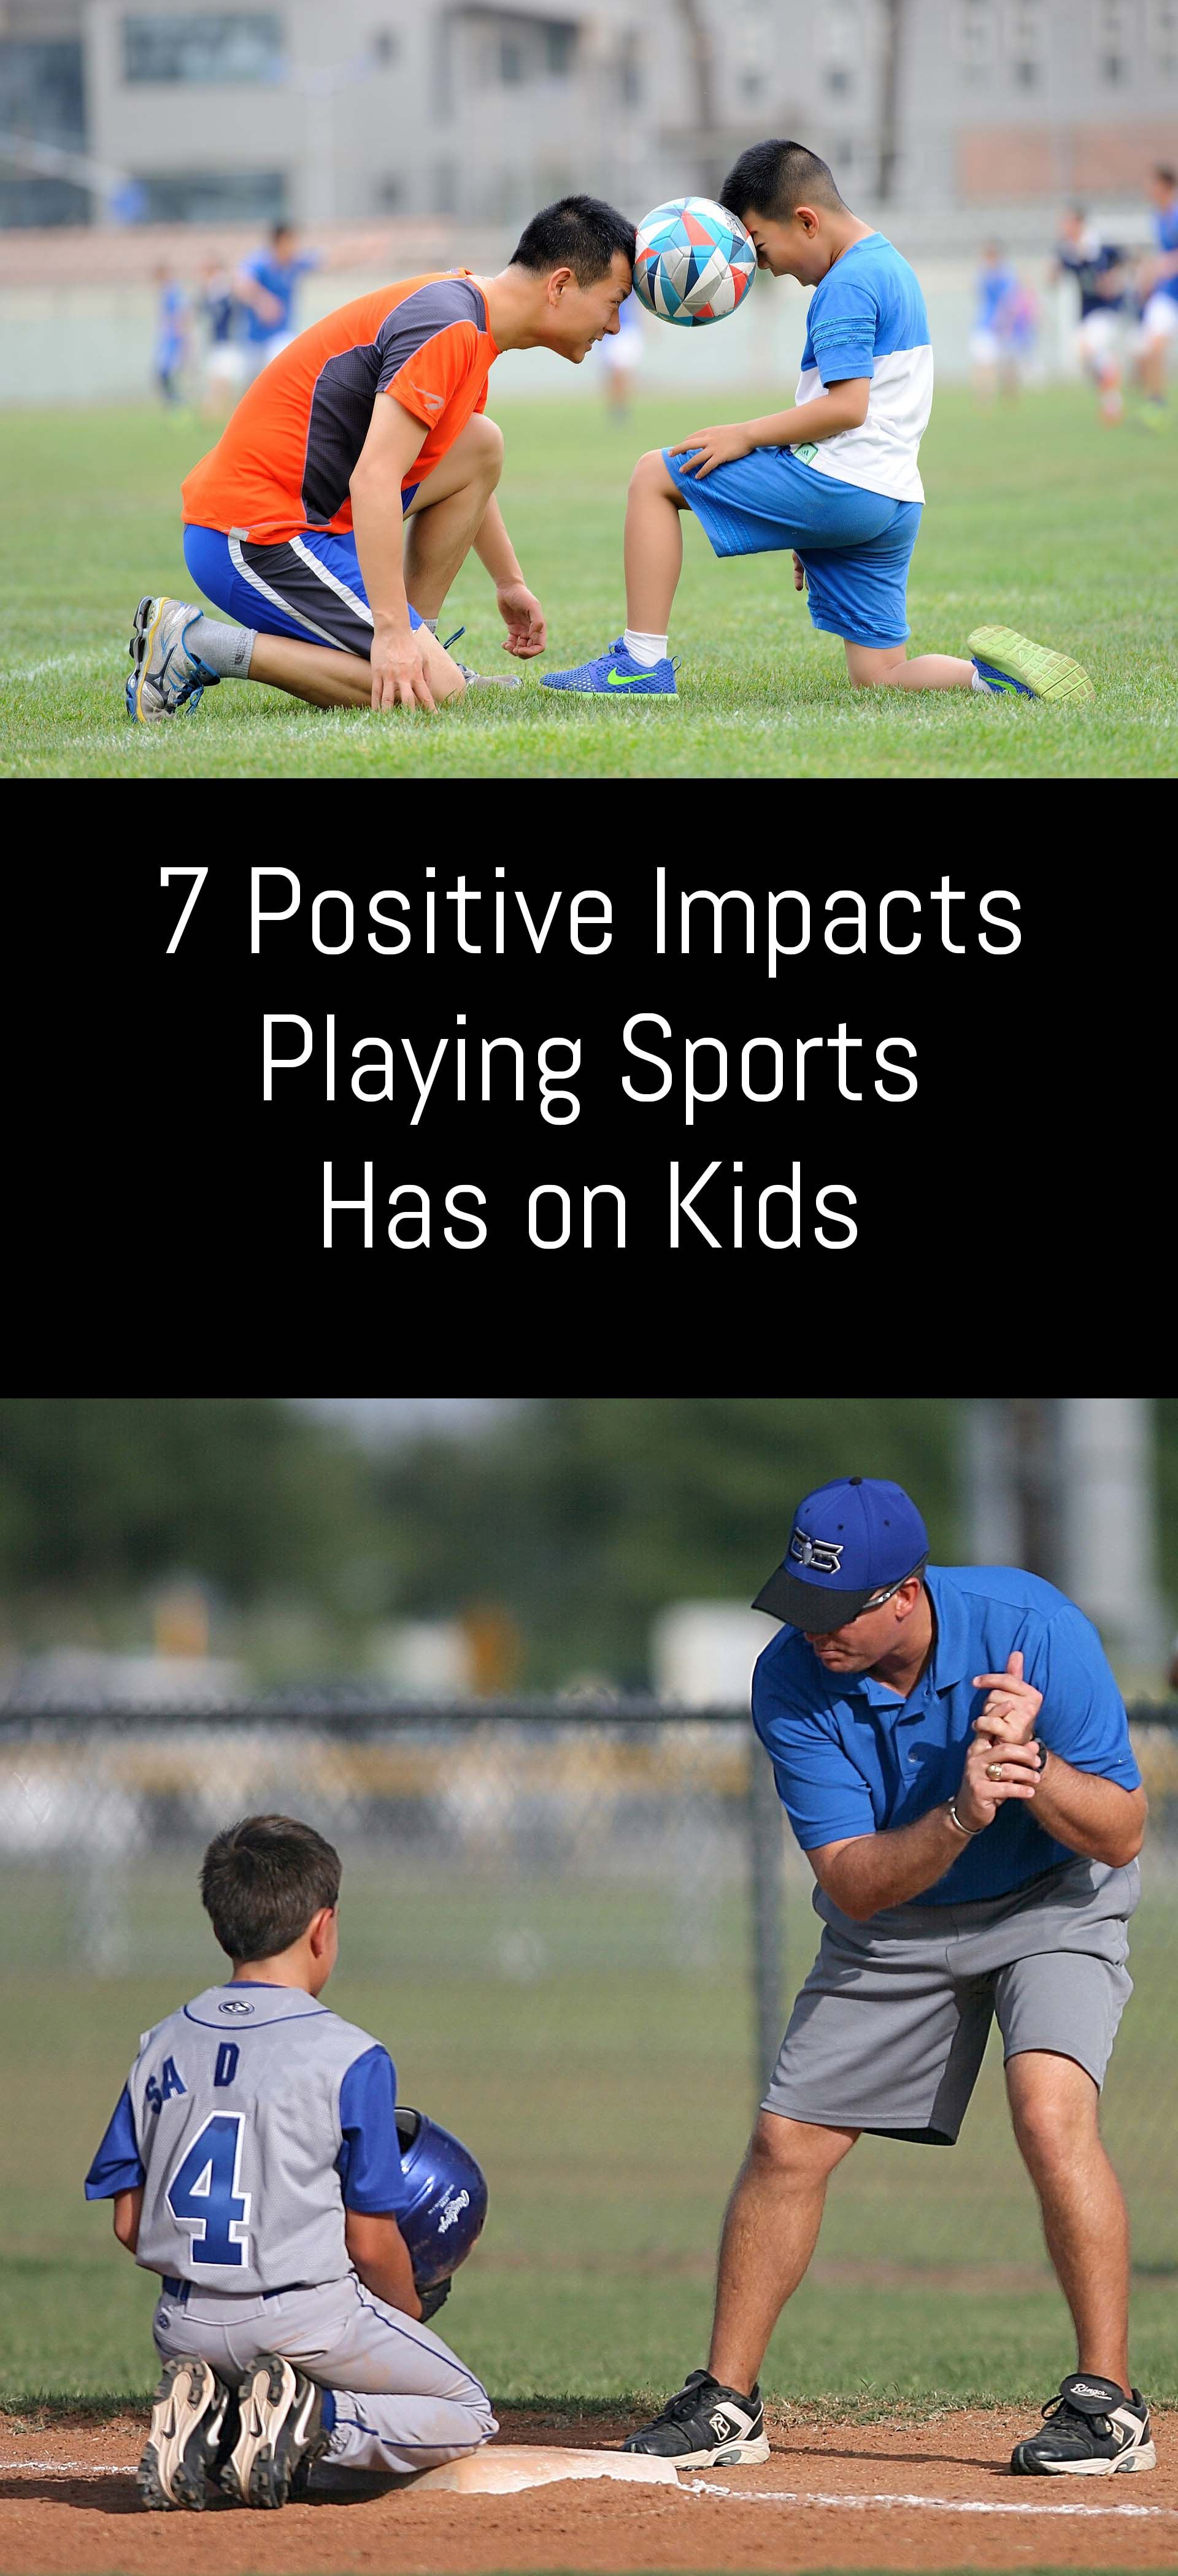 Research has proven over the years that sports in general have several positive impacts for young players that transfer to the home and classroom as well.